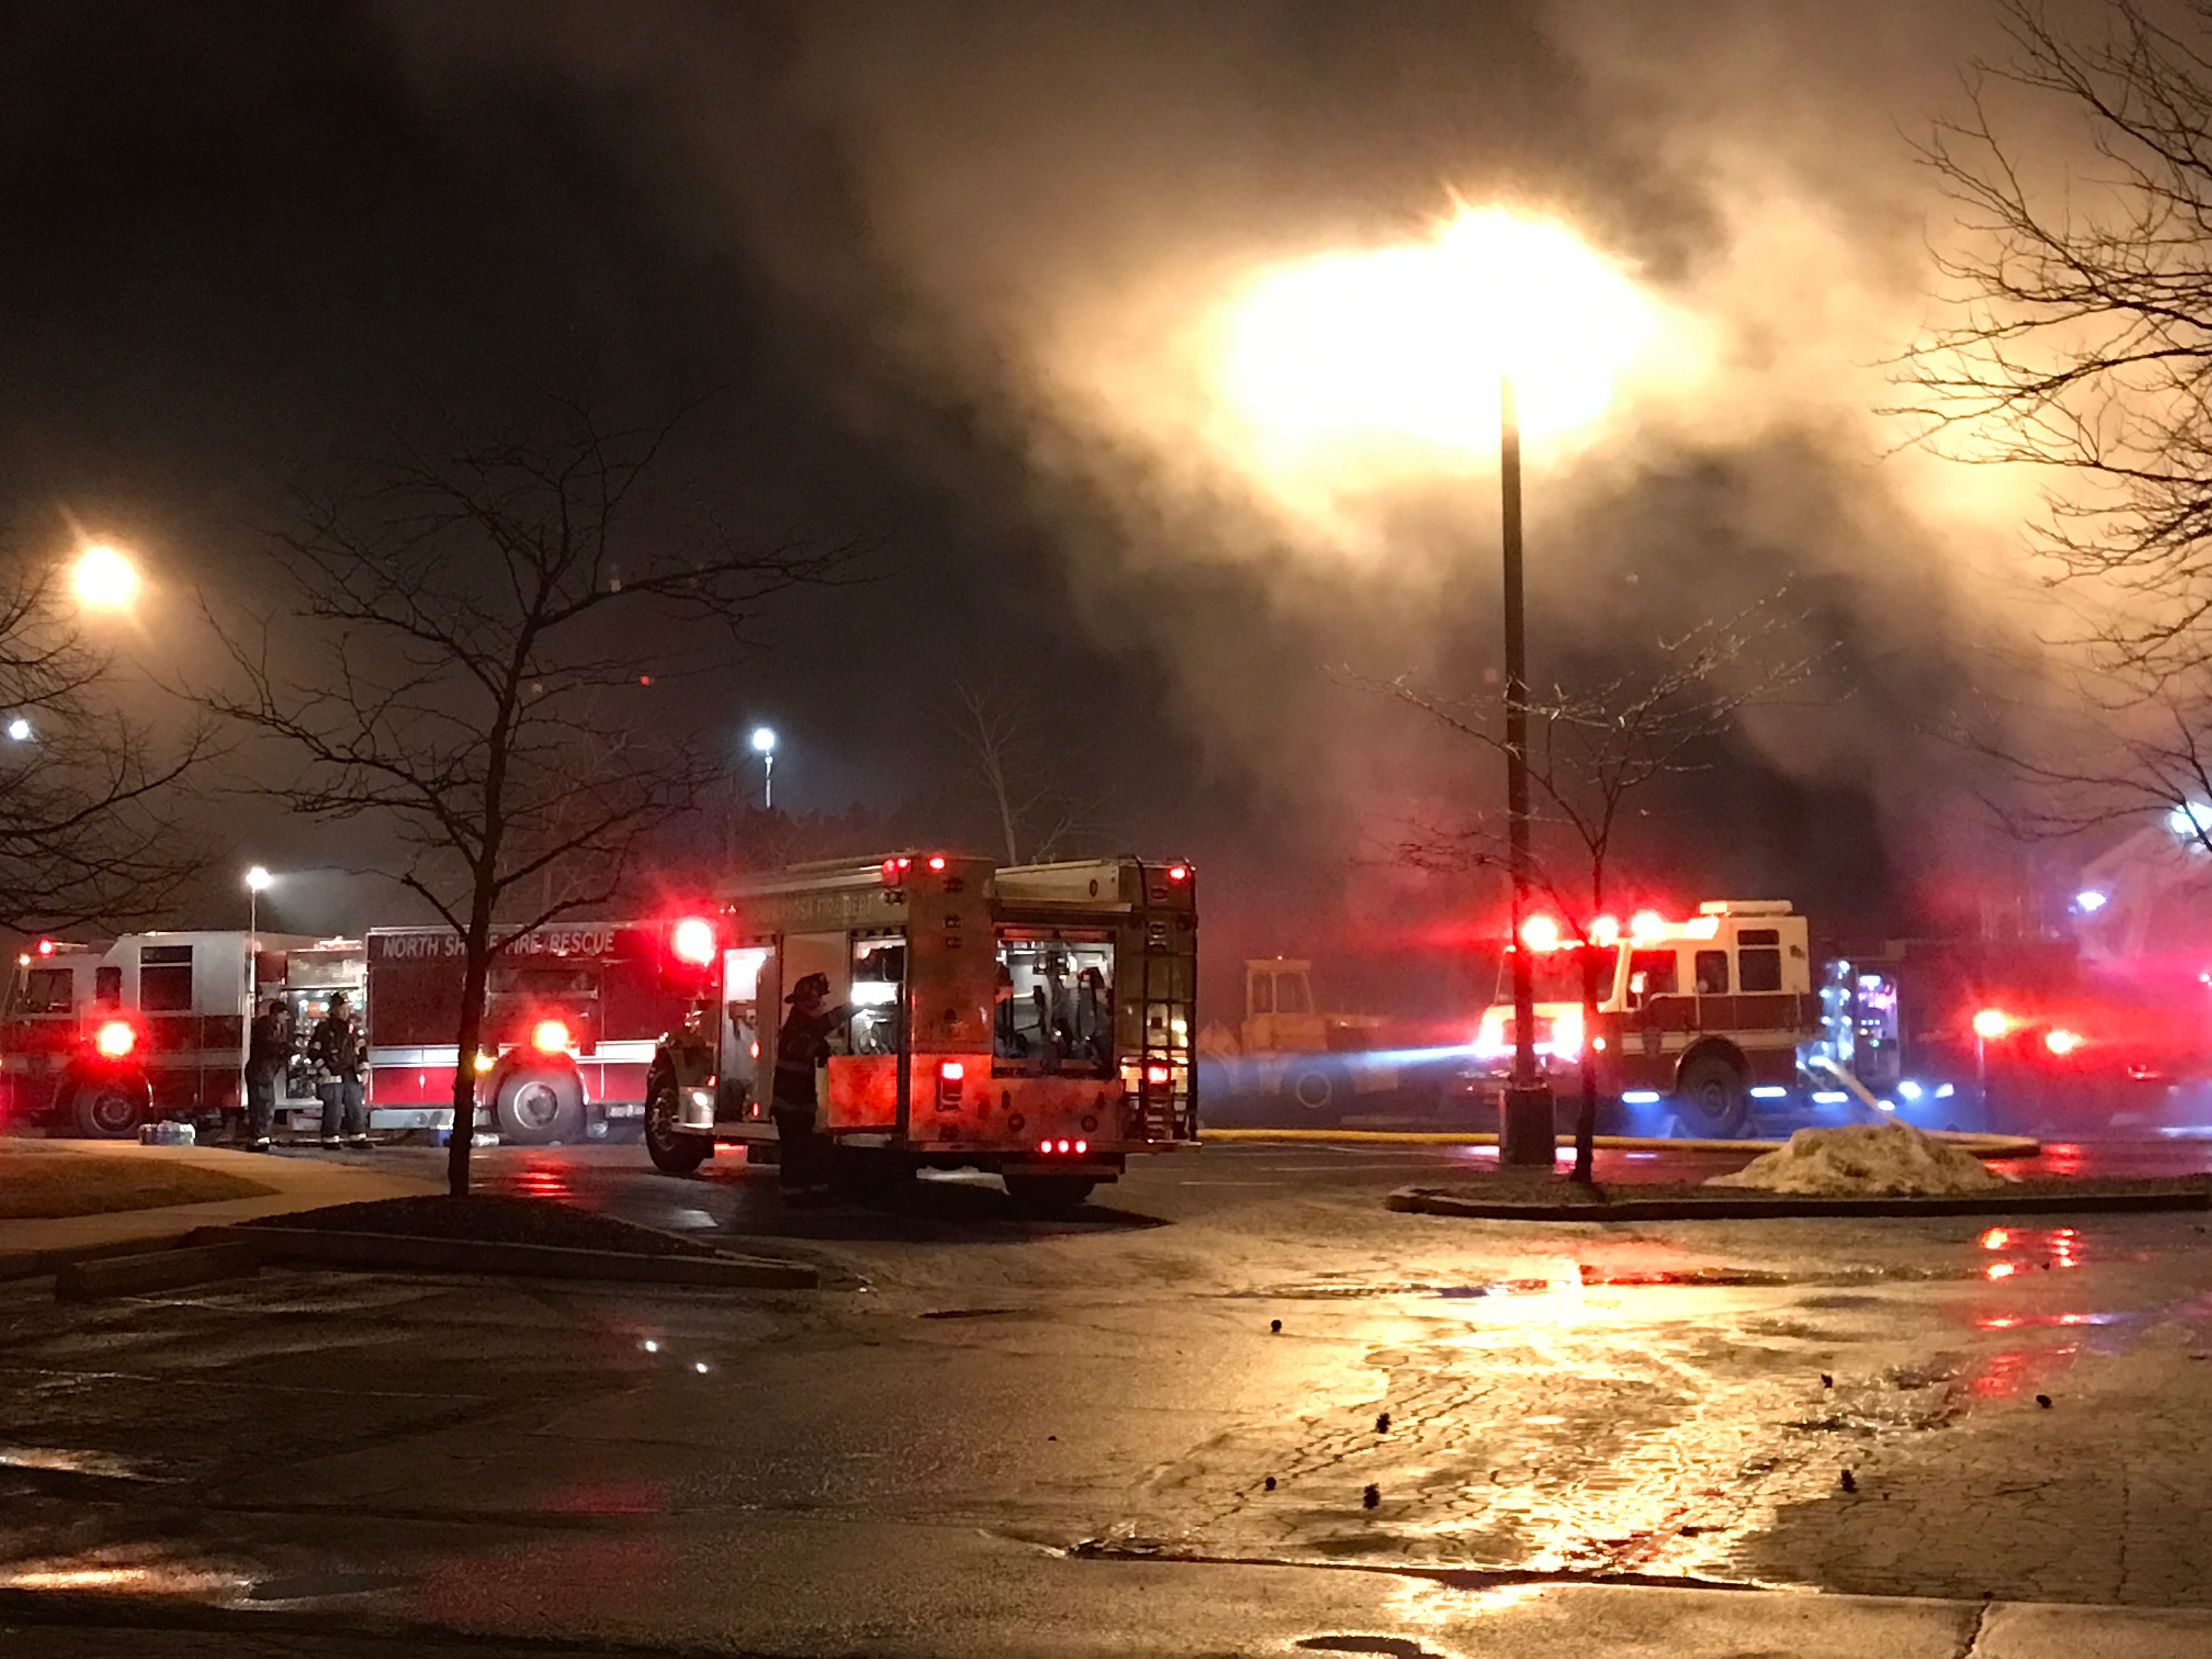 Units from Milwaukee, West Allis, Wauwatosa, Germantown, Menomonee Falls, Cedarburg, Mequon and Thiensville aided North Shore Fire/Rescue in battling the blaze.